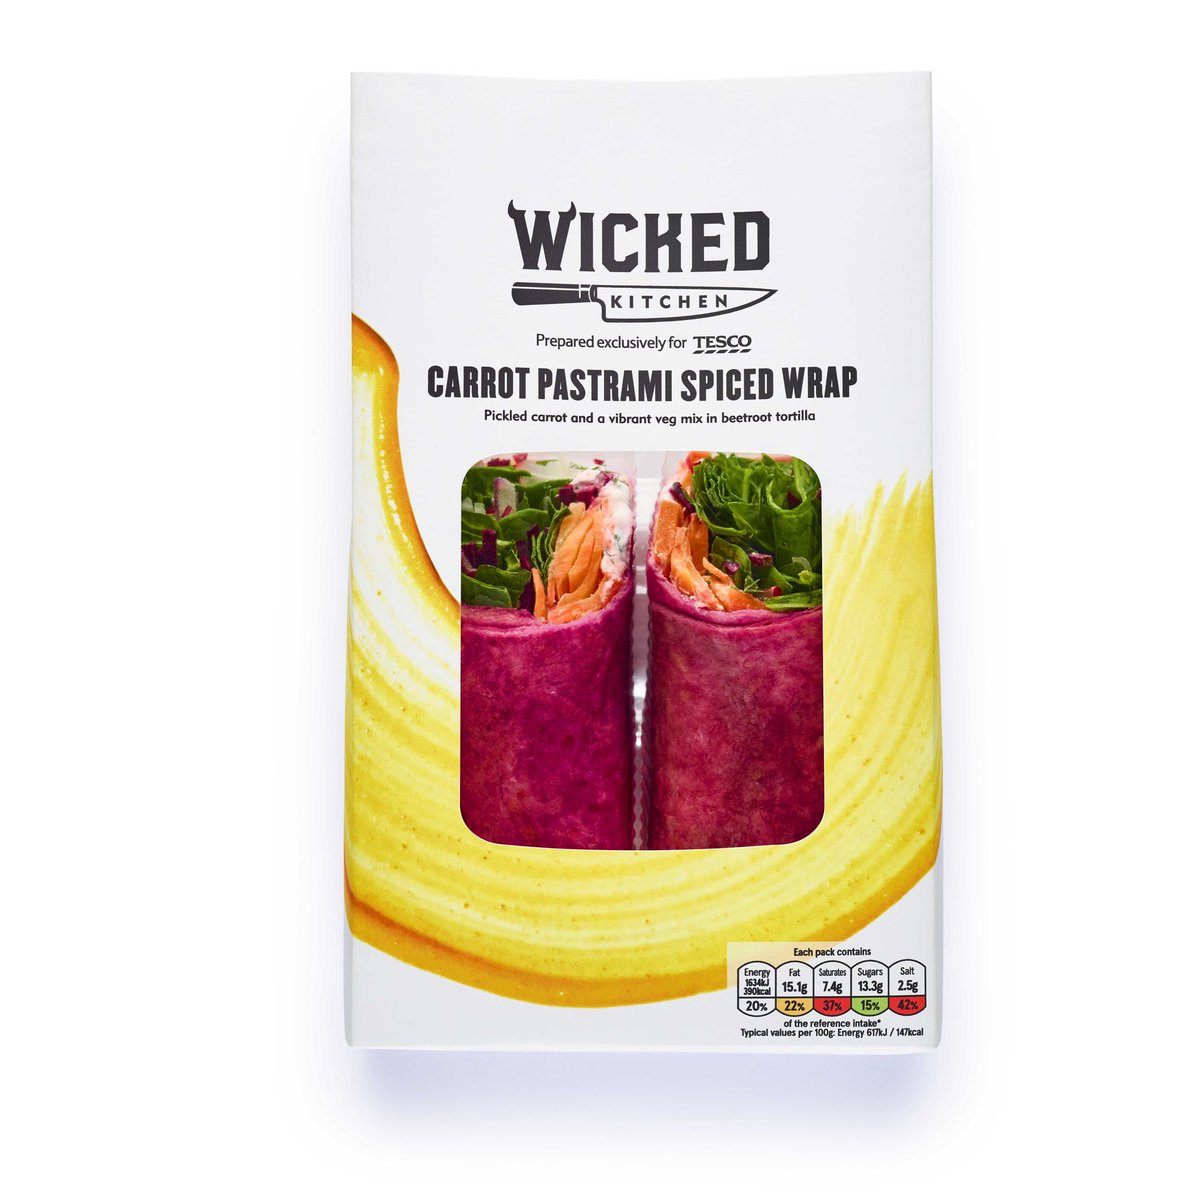 veggie magazine on twitter whos spotted tescos latest vegan range wicked kitchen which launched nationwide today weve been tucking in already and - Wicked Kitchen